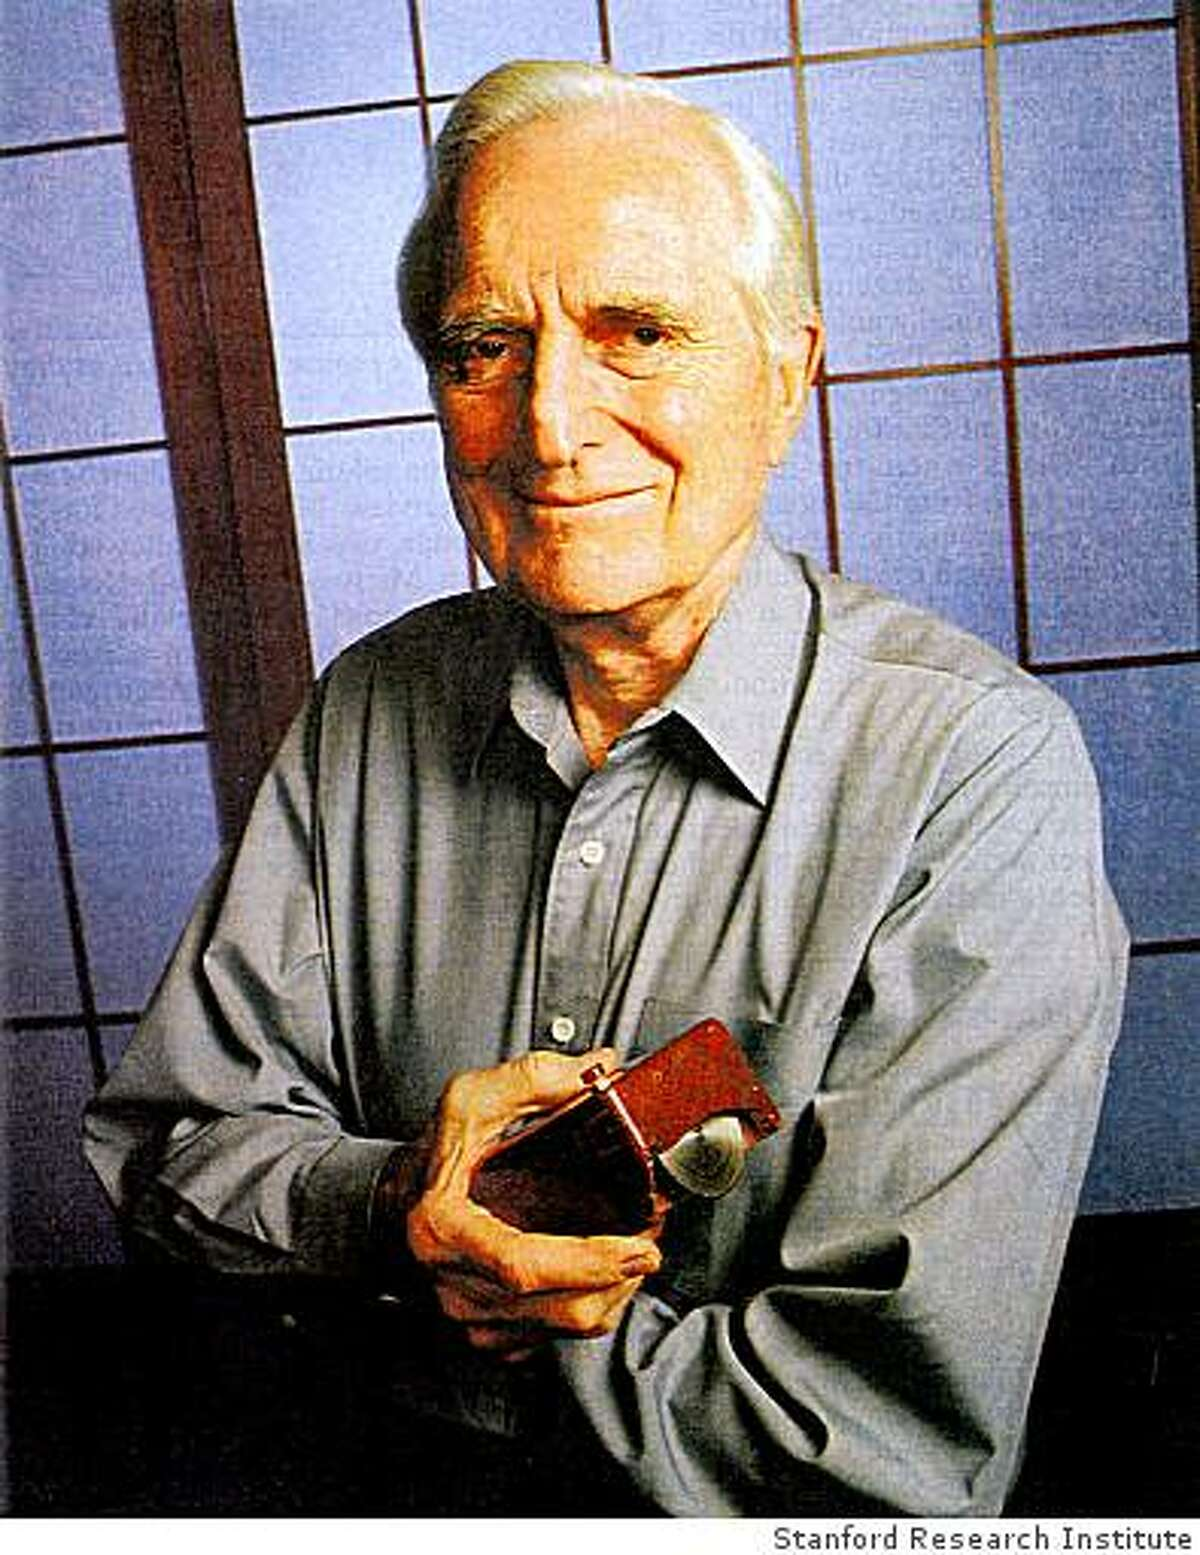 Fourty years ago, Douglas Engelbart and his team from the Stanford Research Institute introduced the computer mouse, hypertext links, multiple windows, shared-screen collaboration involving remote sites and dynamic file linking.